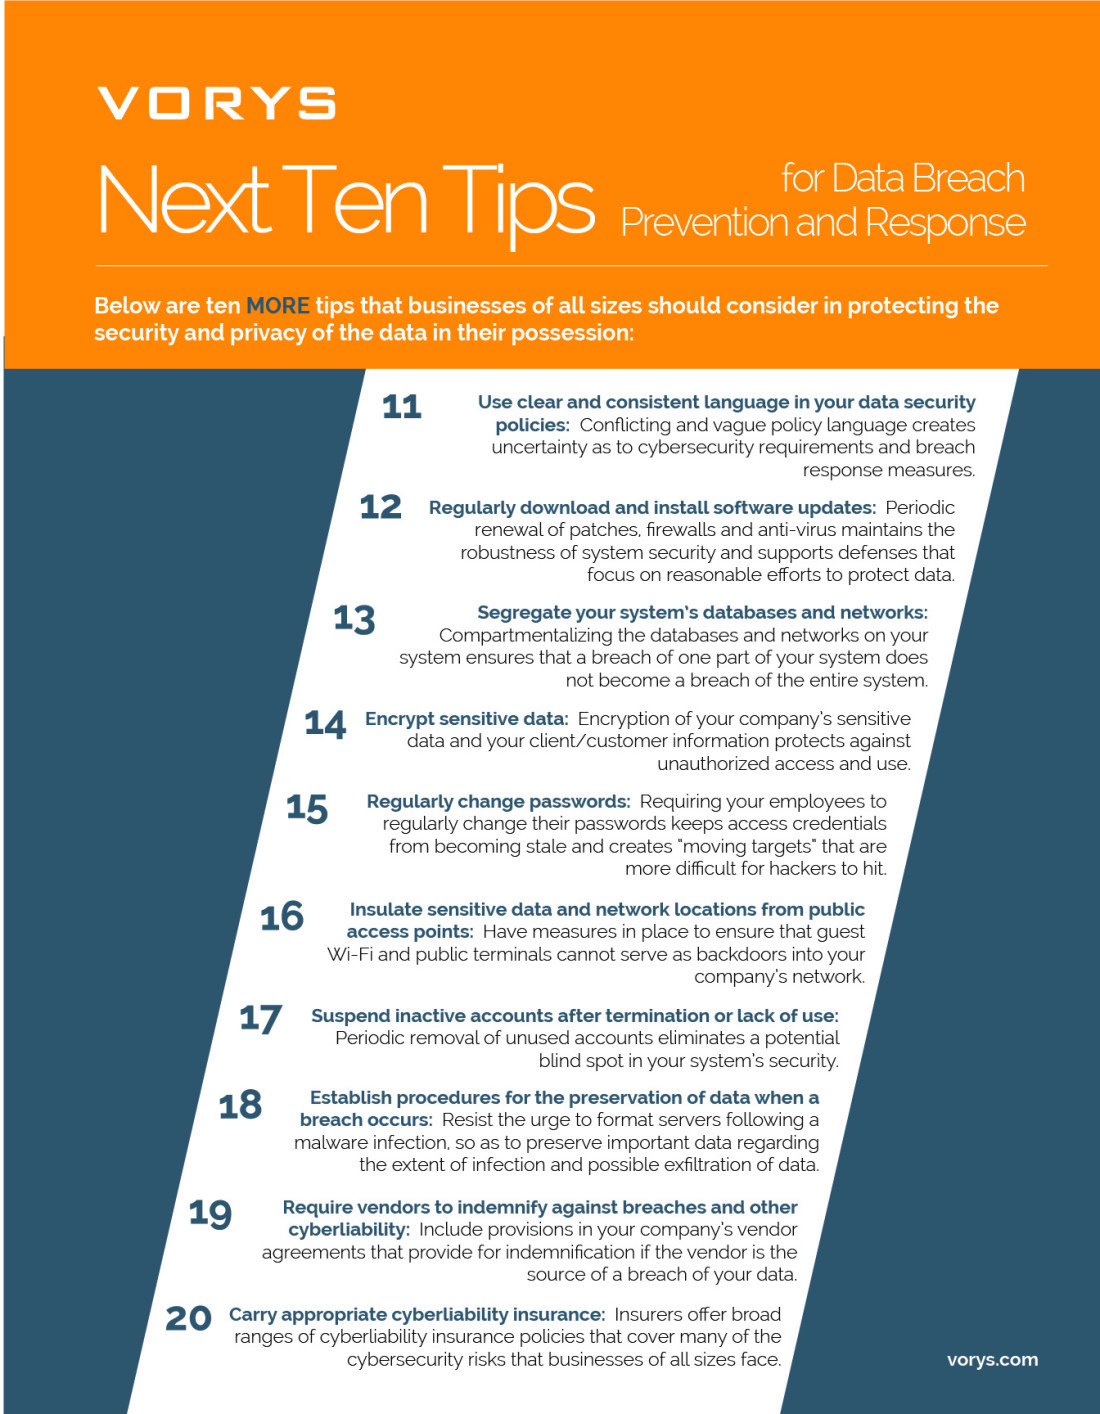 Next Ten Cybersecurity Tips for Data Breach Prevention and Response